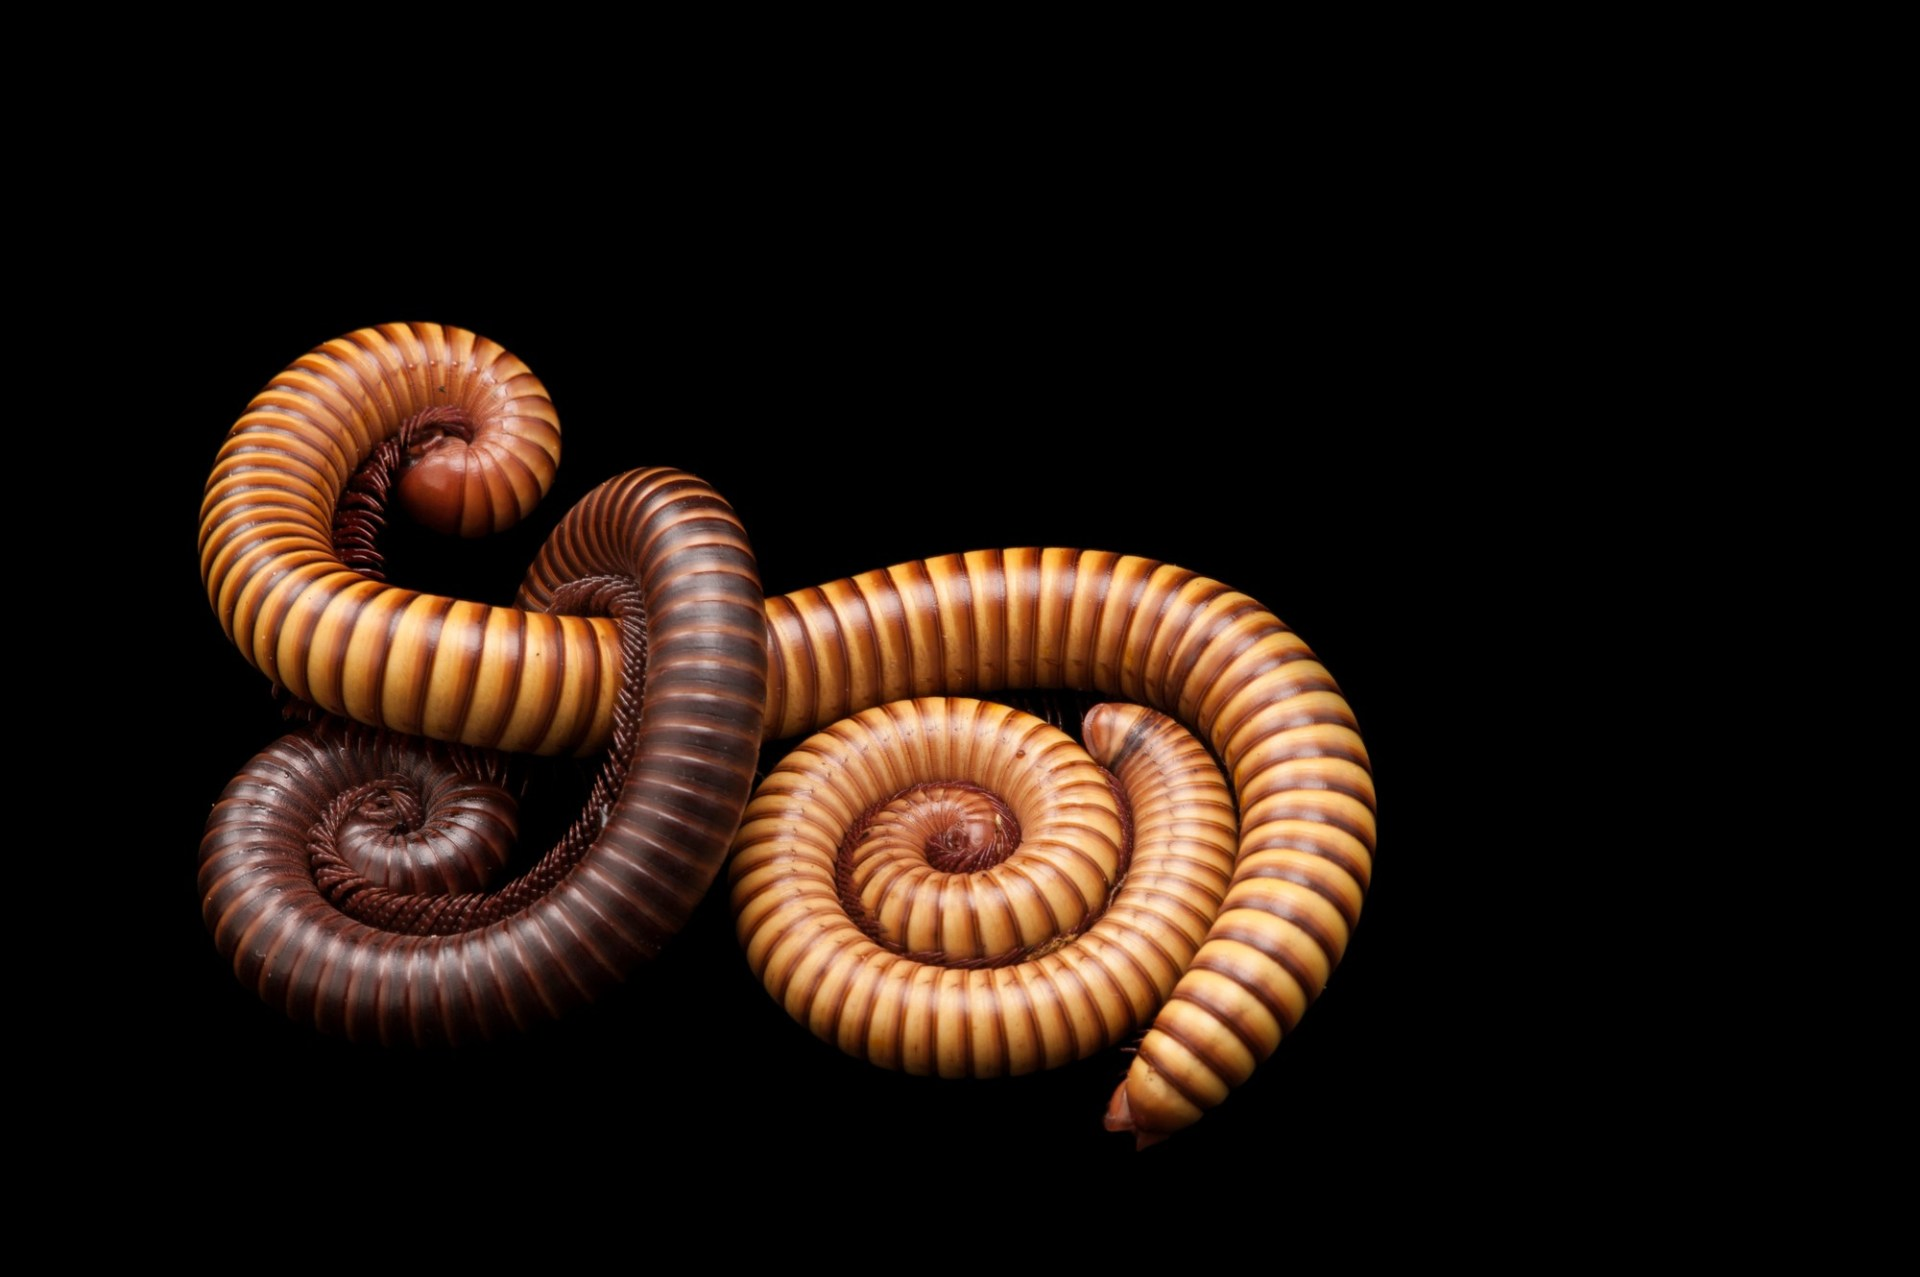 Sonoran Desert millipedes (Orthoporus ornatus) at the Fort Worth Zoo.